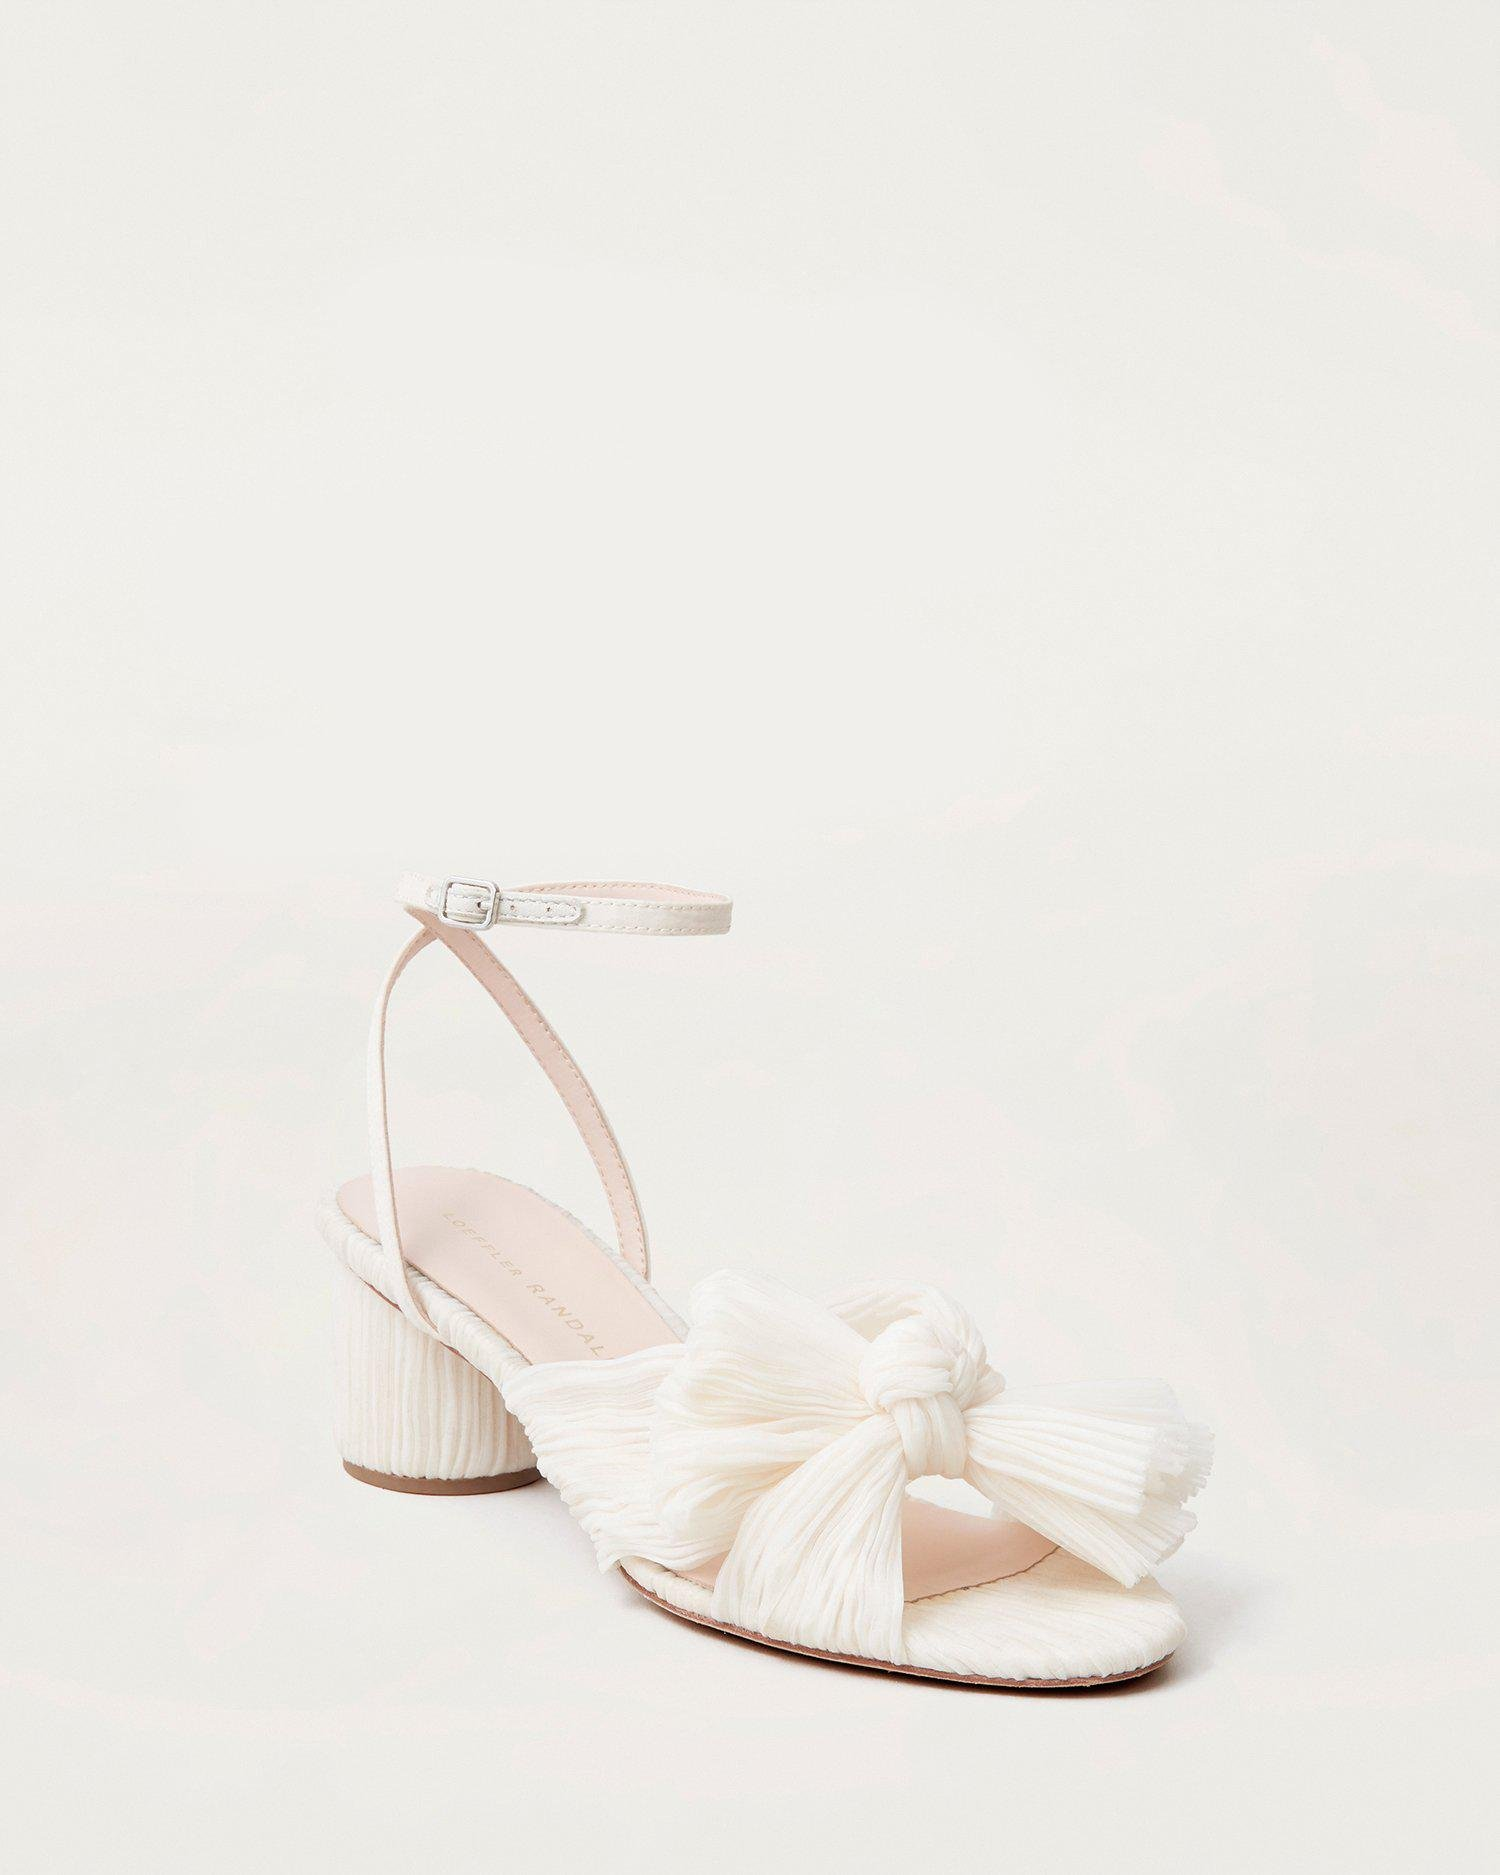 Dahlia Bow Low Heel with Ankle Strap Pearl